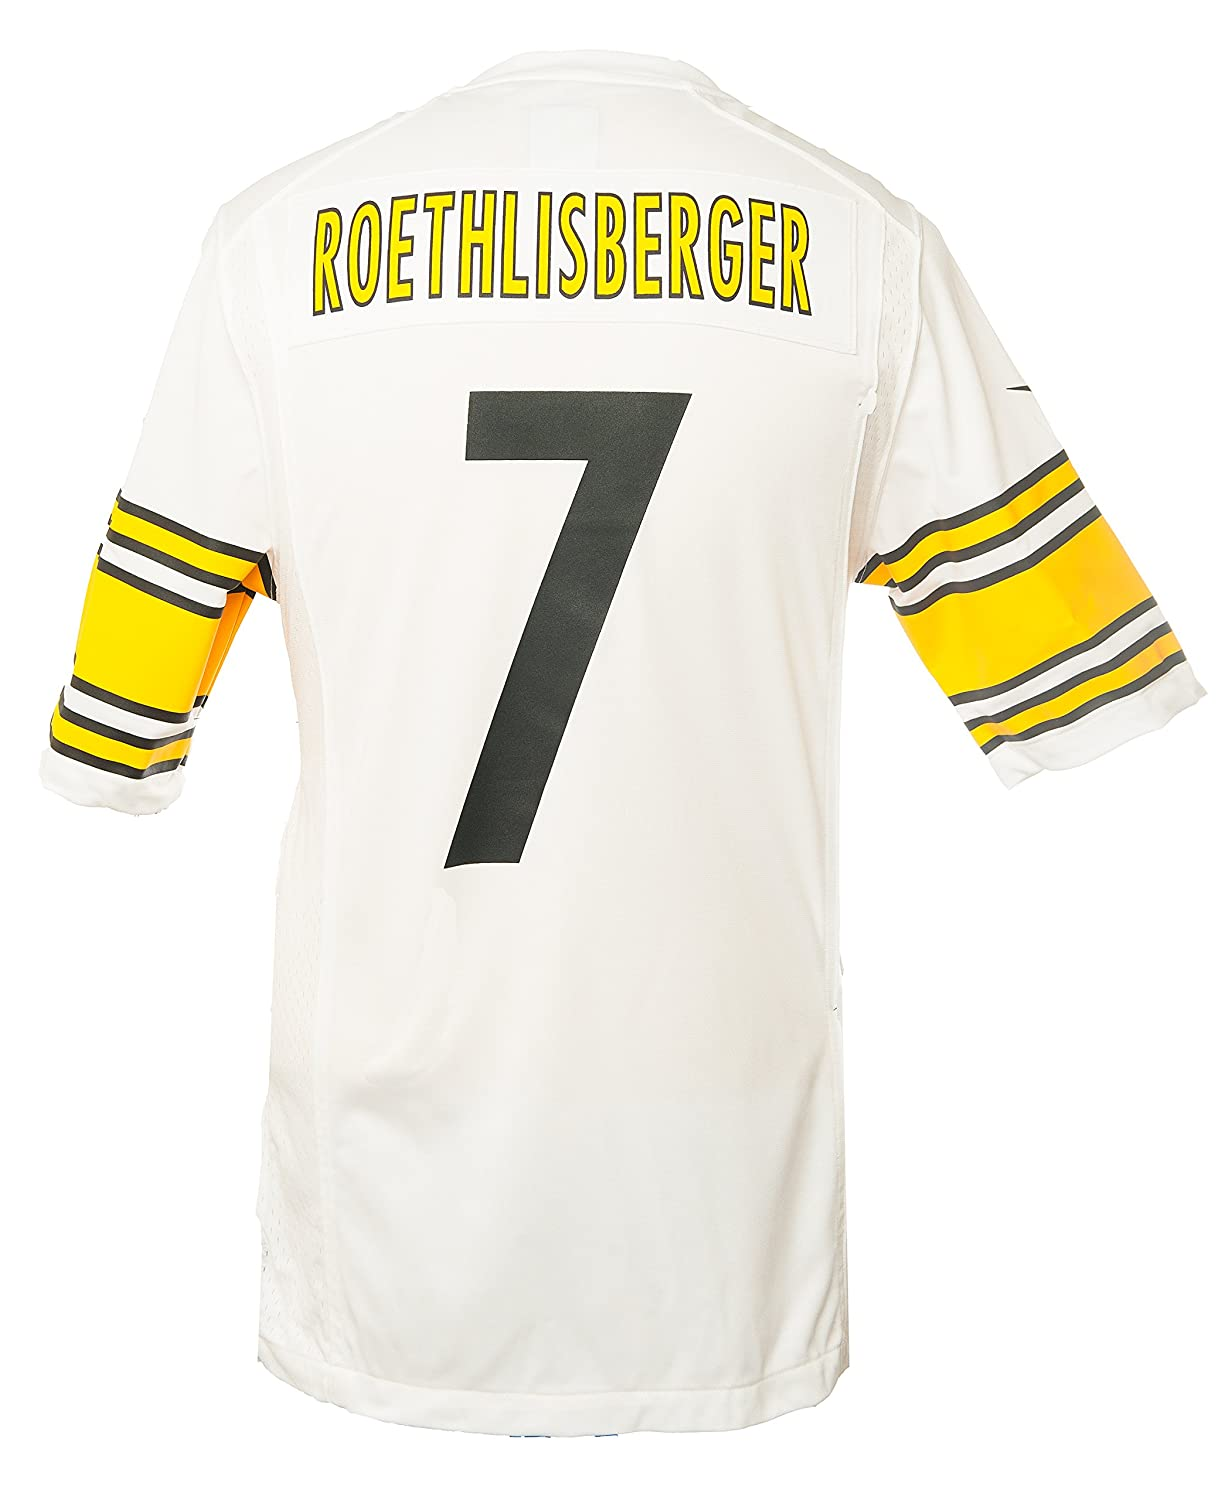 Nike Men s NFL Pittsburgh Steelers Ben Rothlesberger Jersey - White -  Large  Amazon.co.uk  Sports   Outdoors 0bb97cd9b